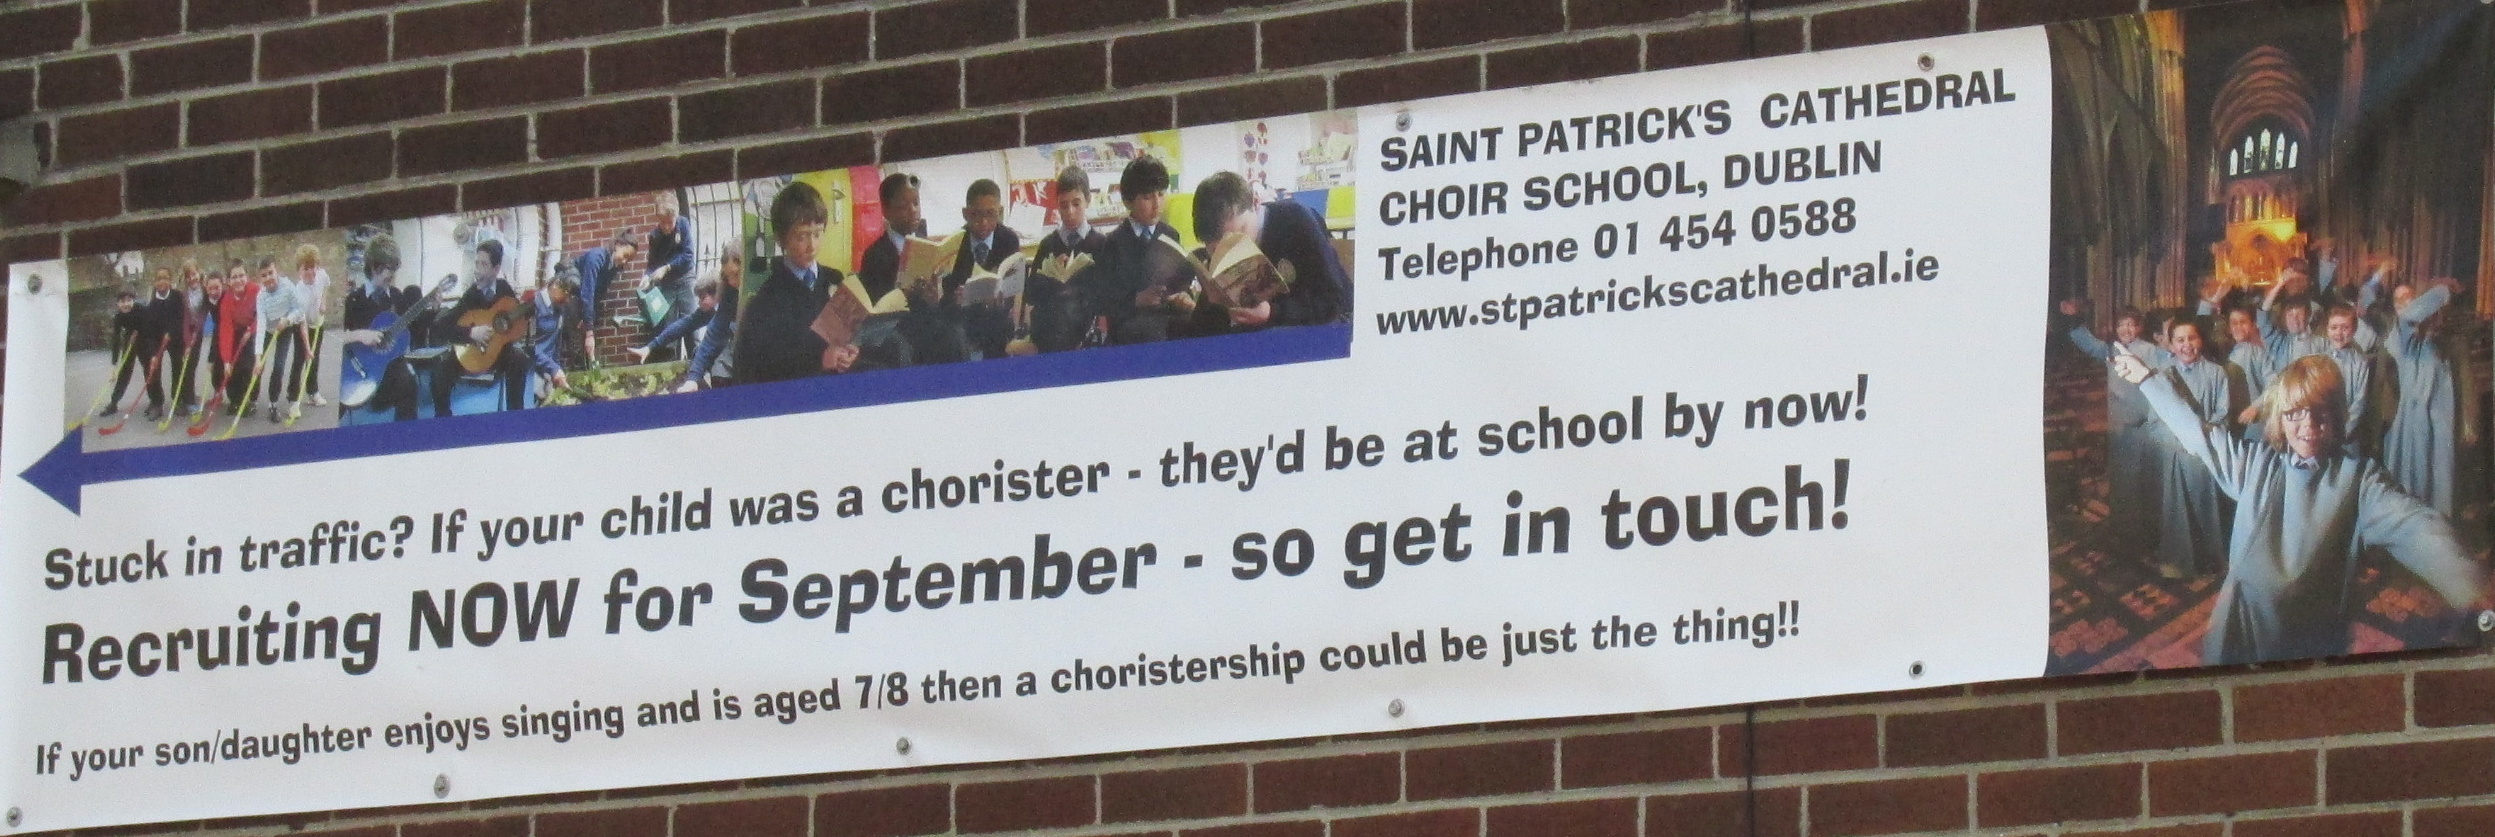 St. Patrick's Cathedral Choir School ad